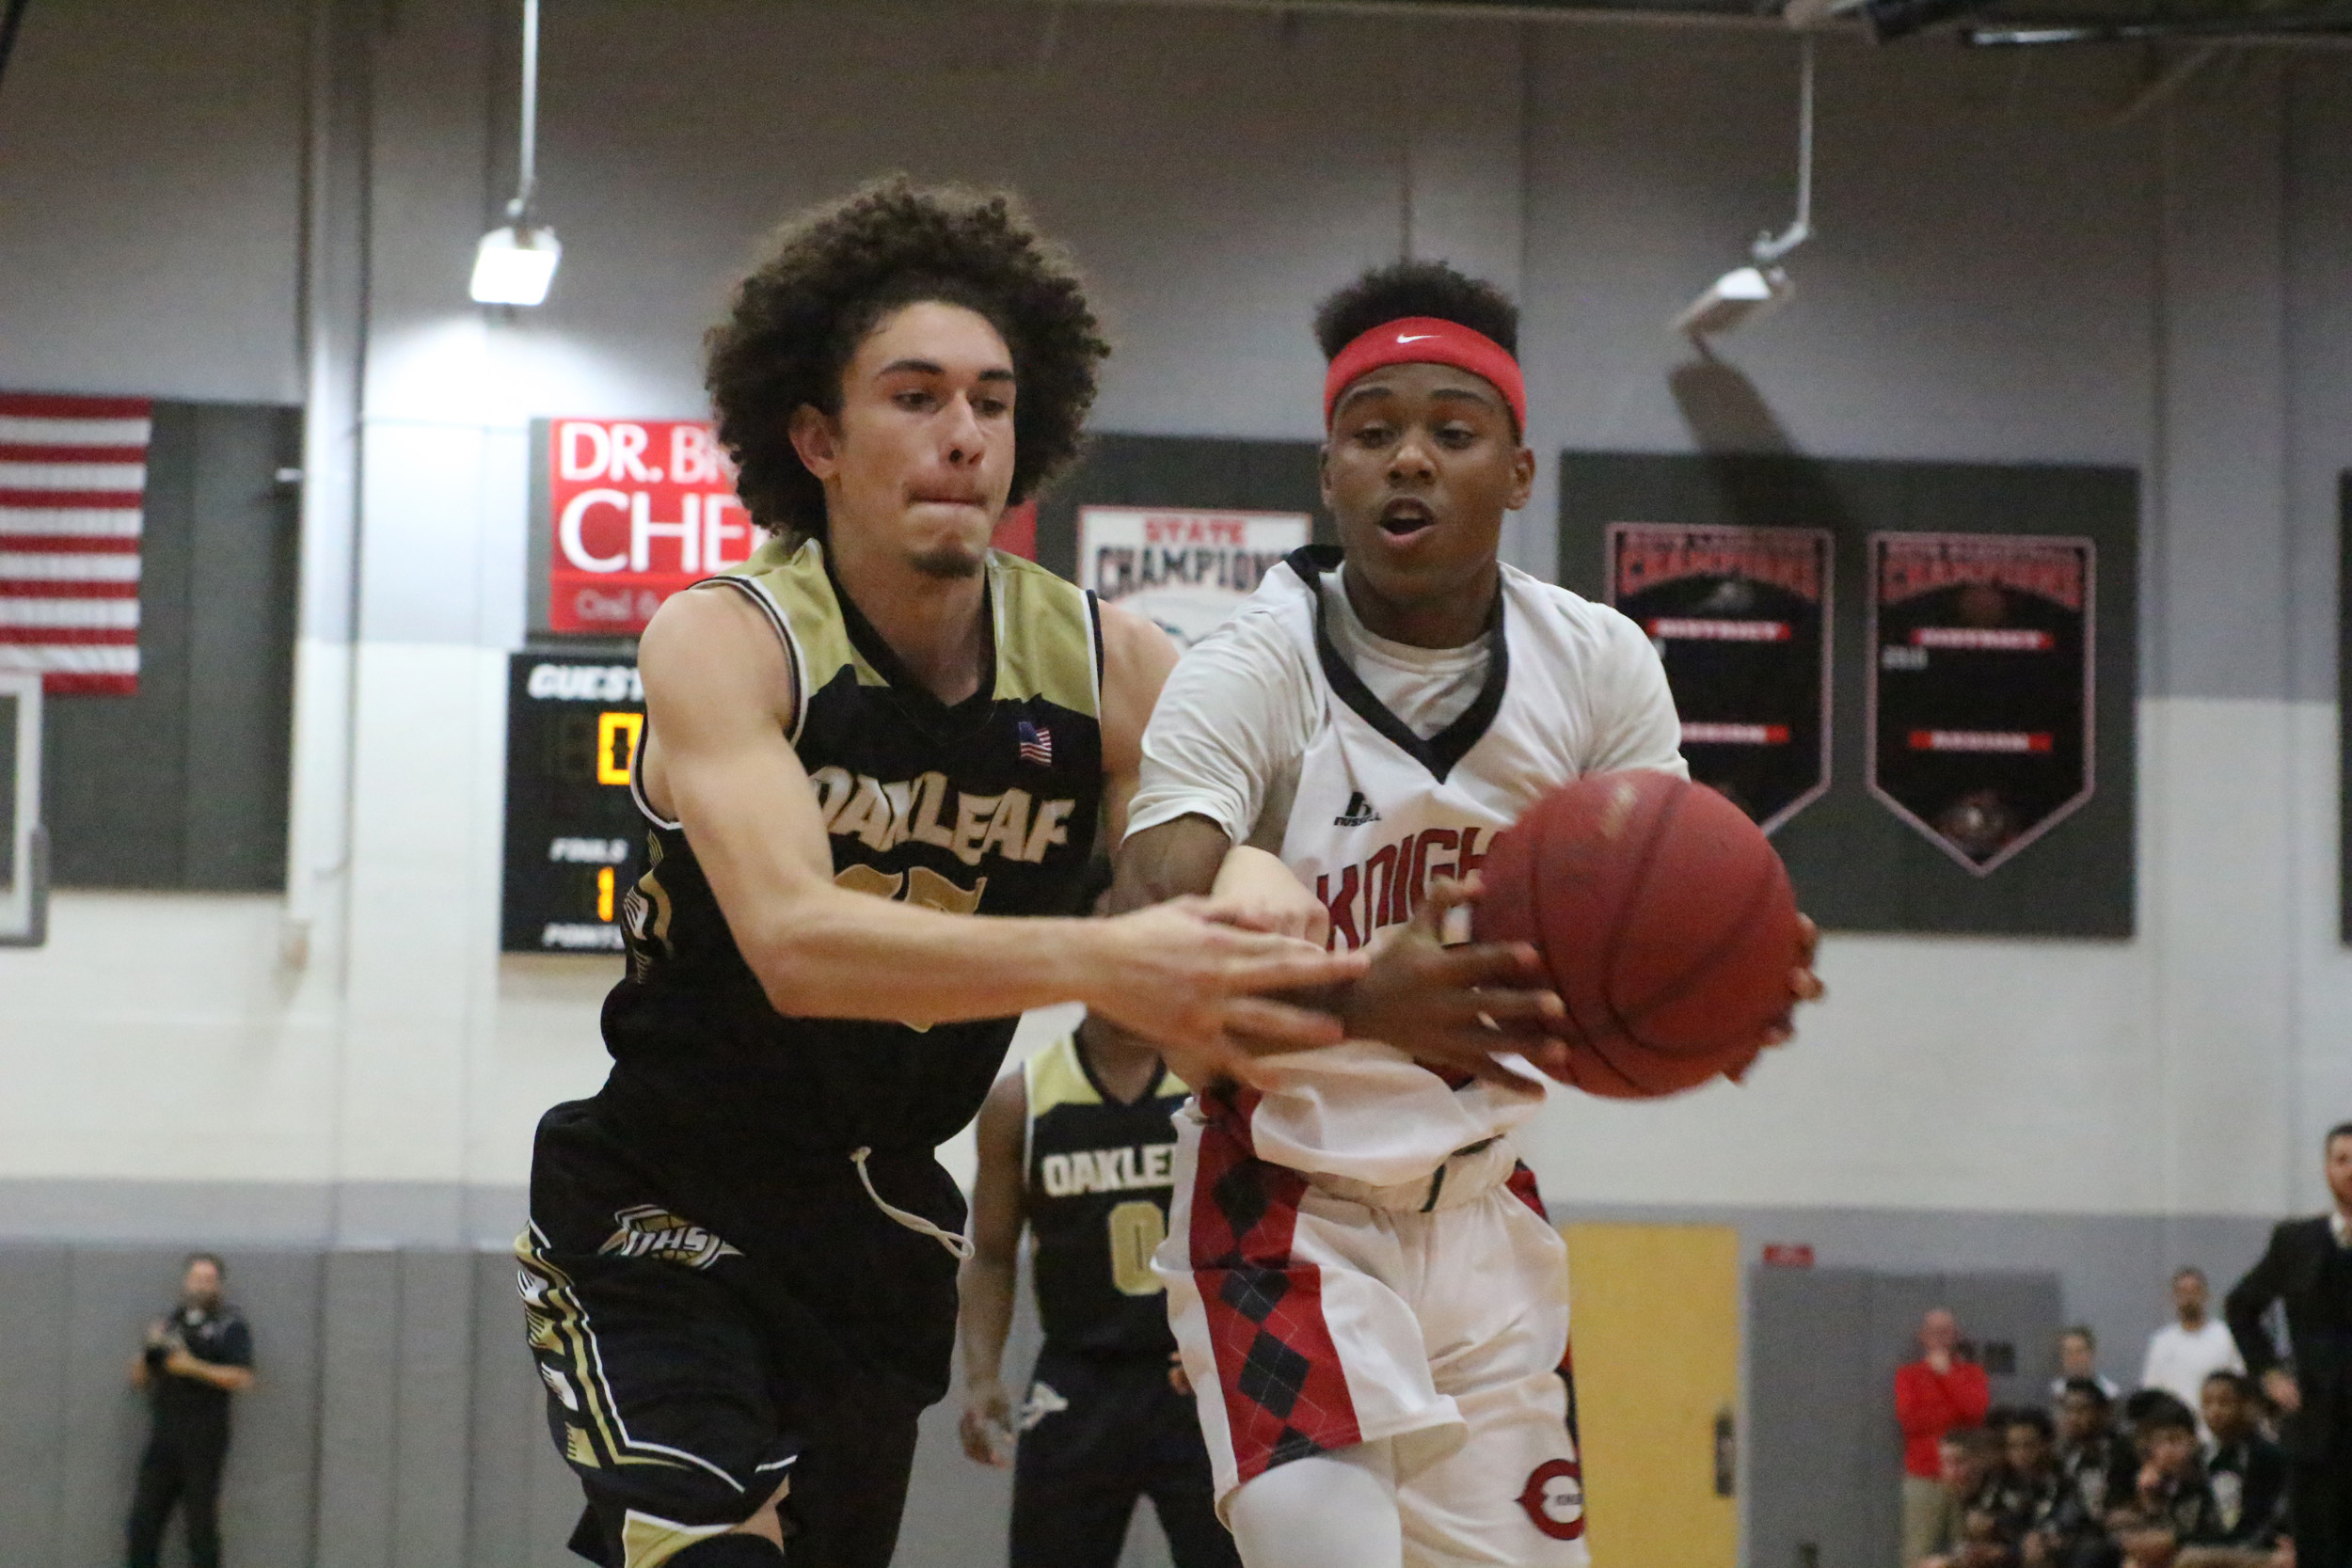 Oakleaf High forward Brandon Aponte came in as a key sixth man for the Knights and came up with big plays late in the second half.